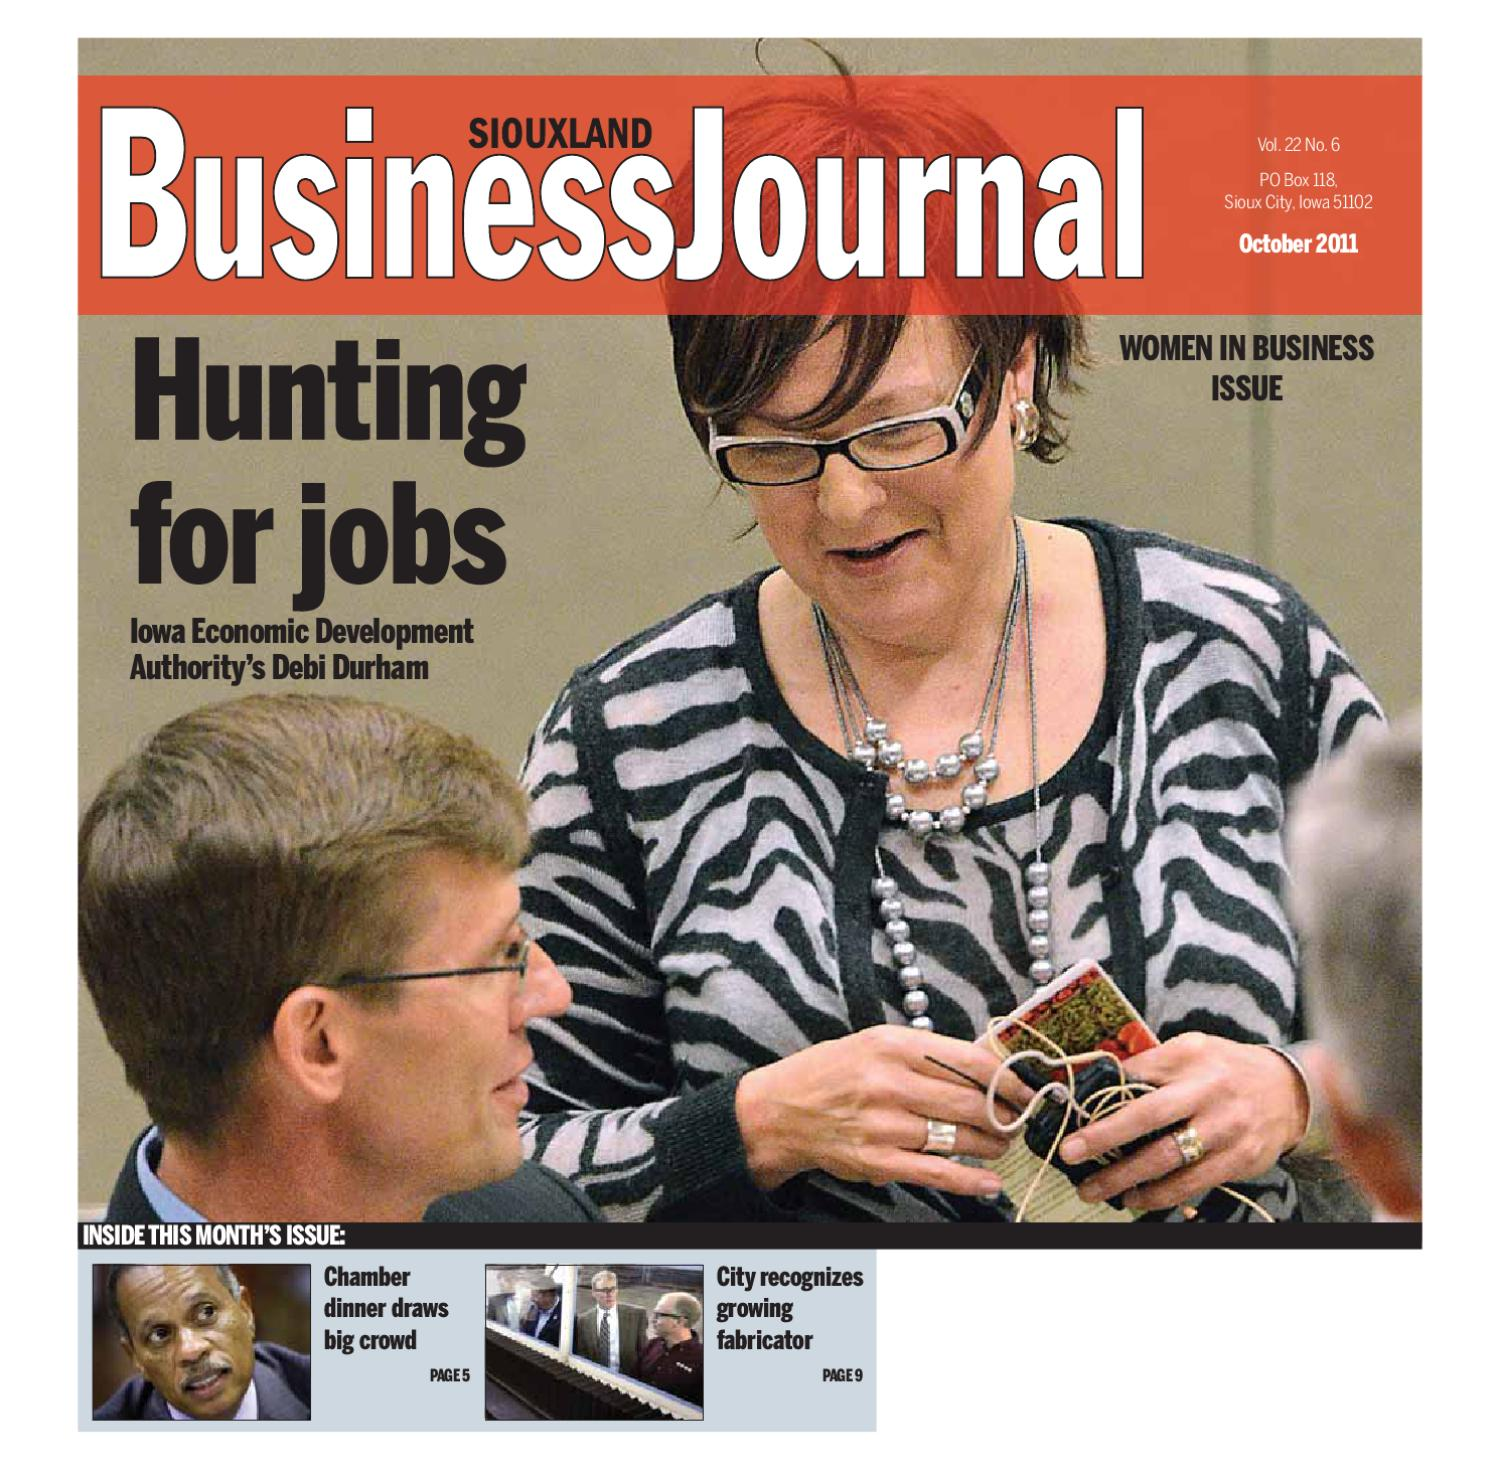 siouxland business journal october 2011 2 by sioux city journal